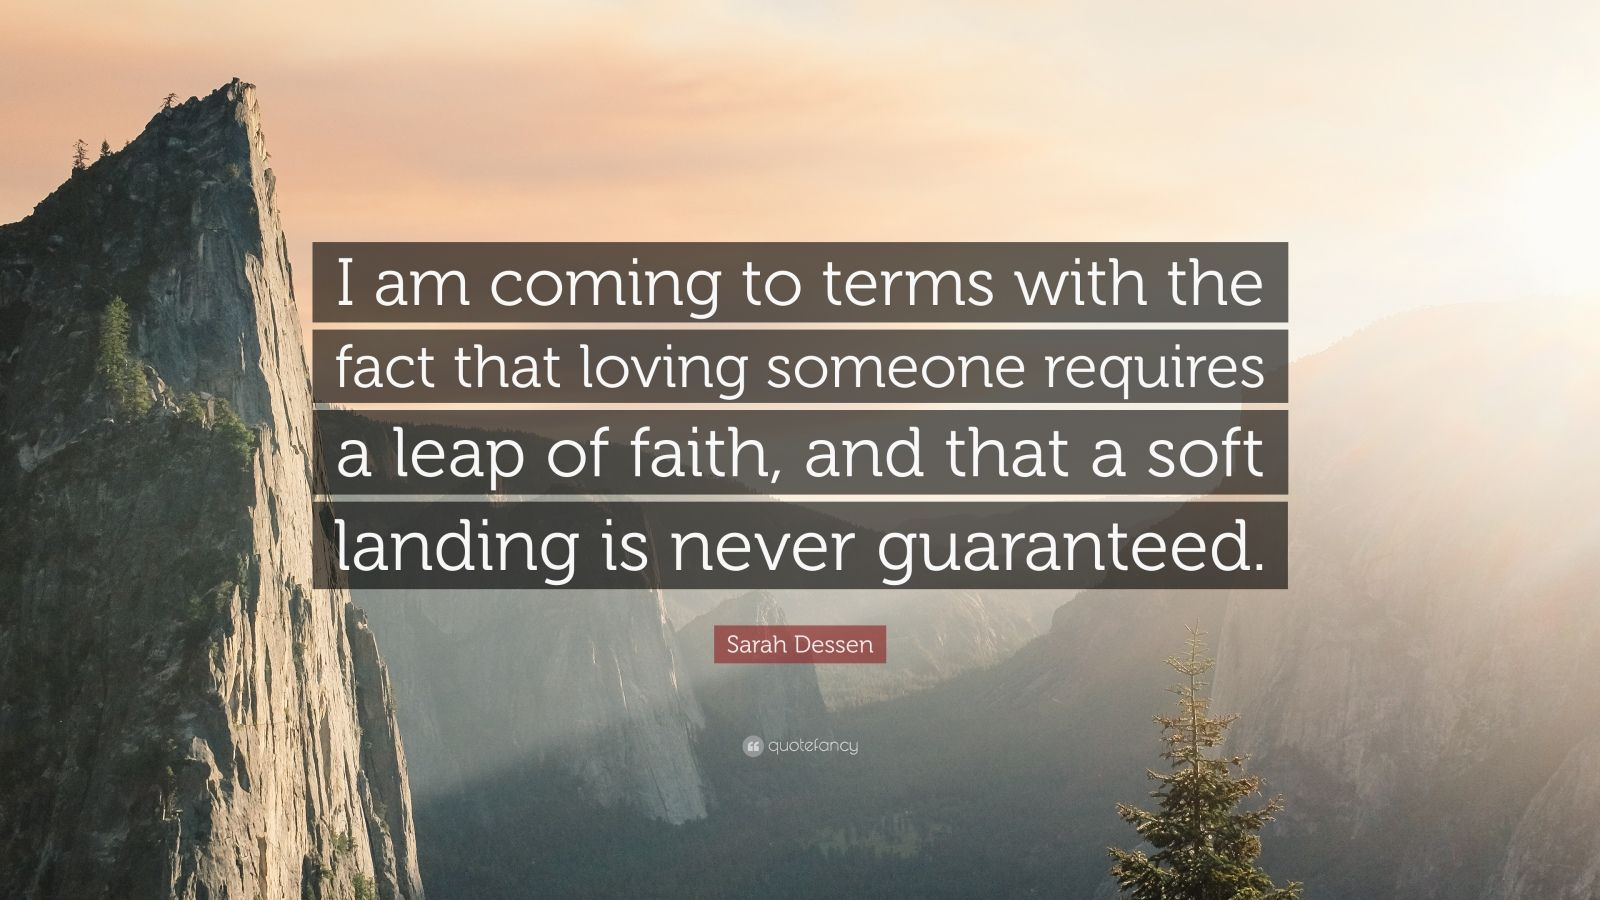 """Sarah Dessen Quote: """"I am coming to terms with the fact that loving someone requires a leap of faith, and that a soft landing is never guaranteed."""""""